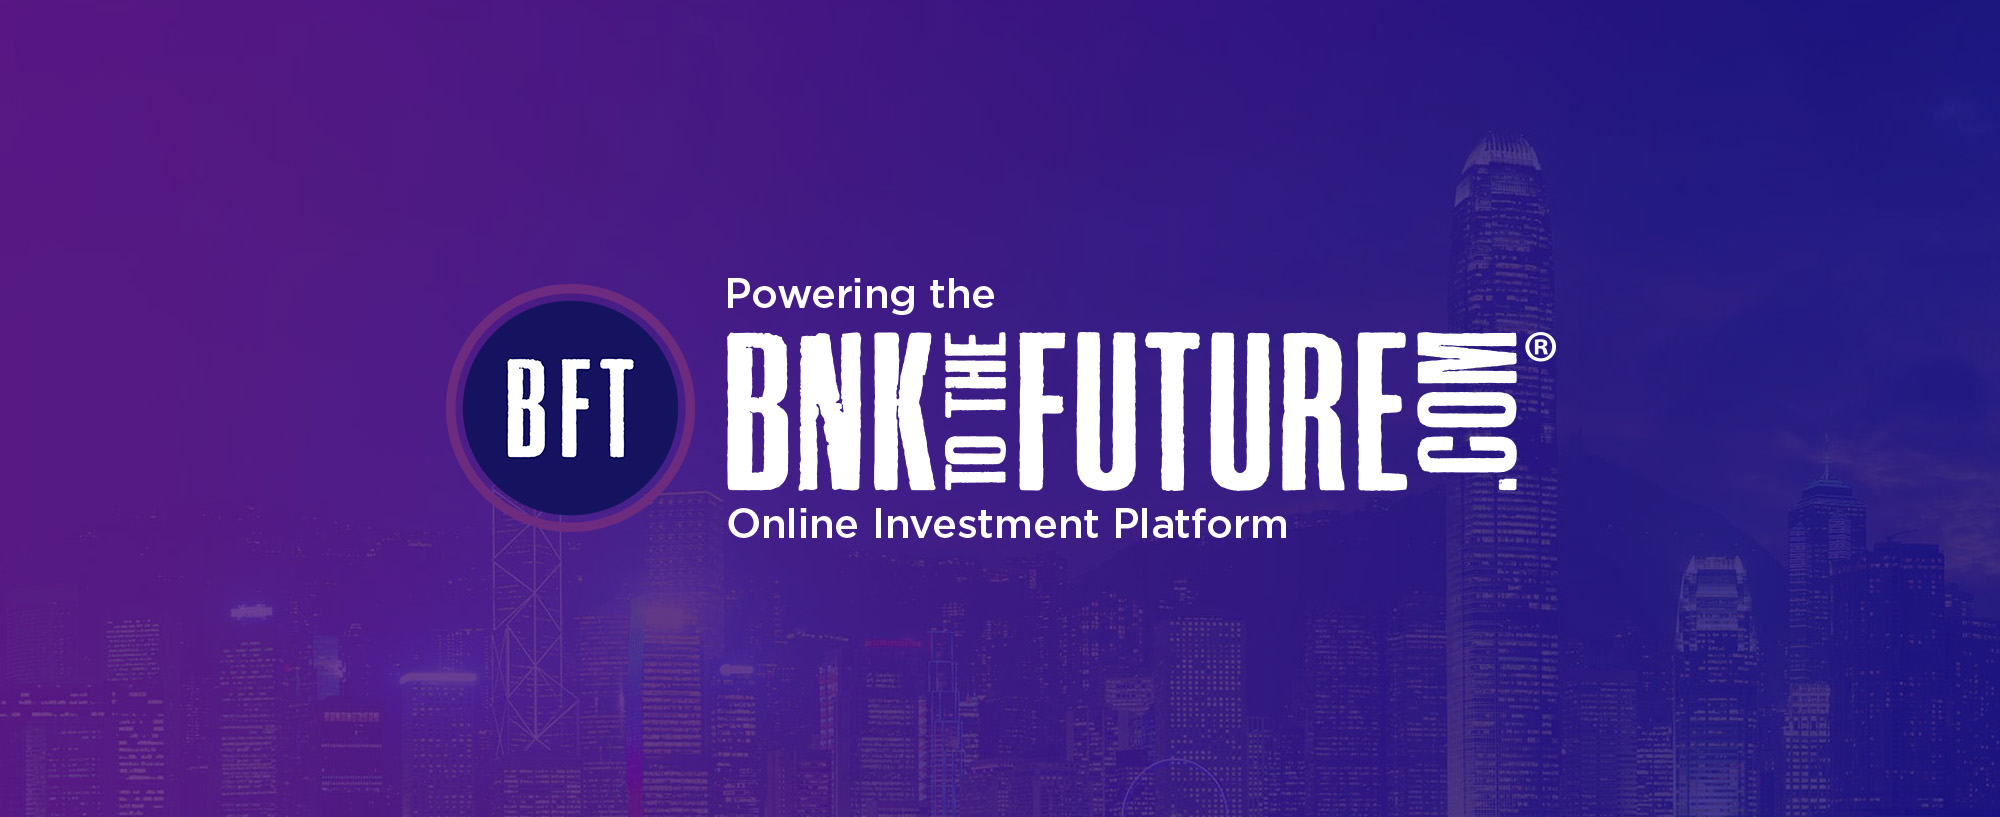 New BnkToTheFuture pitches, features and news